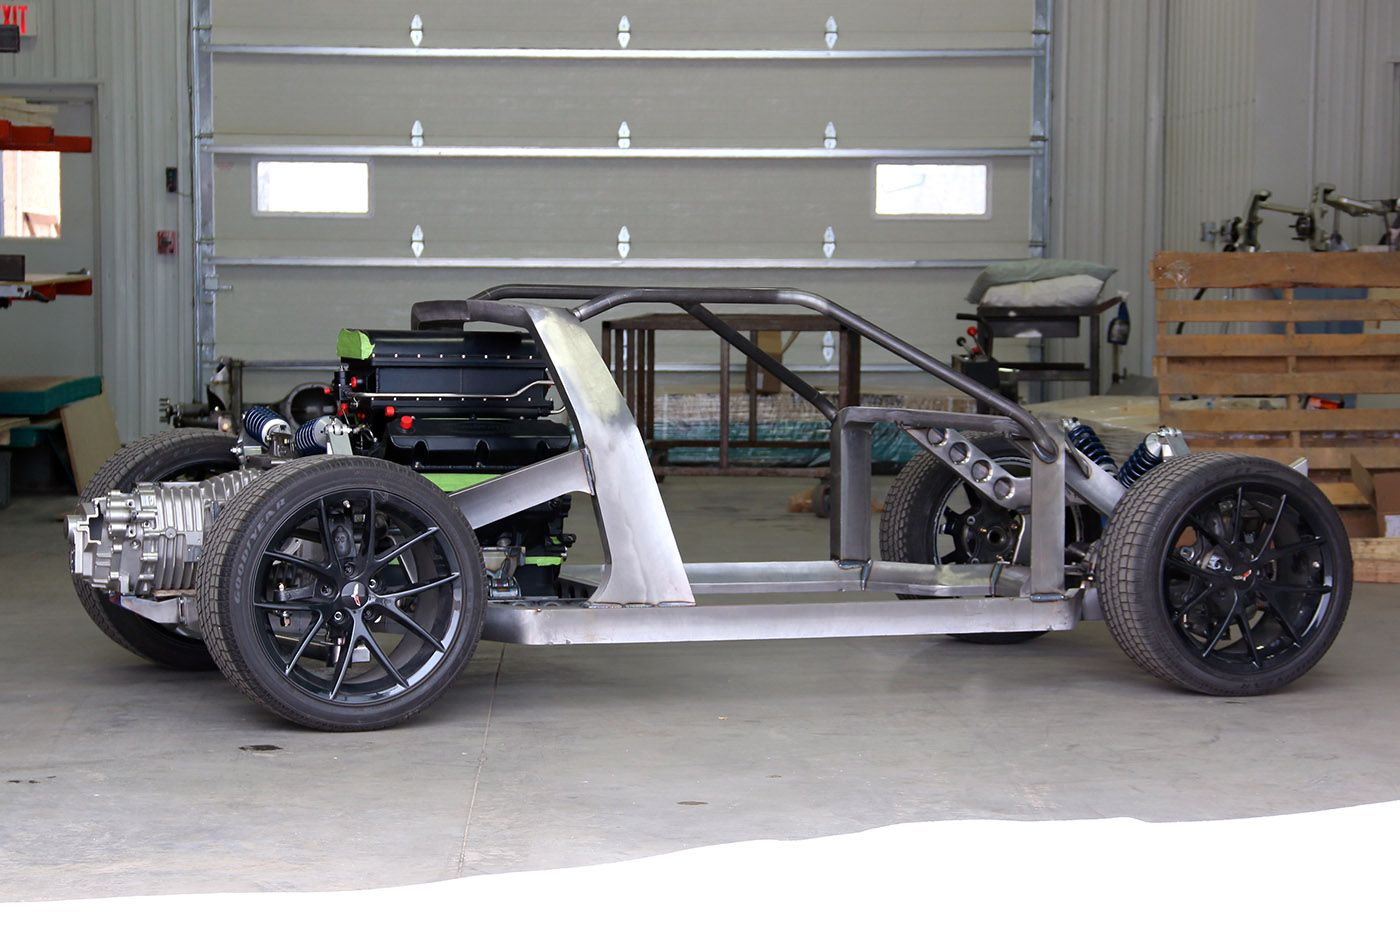 Kart Cross Buggy Build Building A Pantera With A Twin Turbo 428 Windsor карт